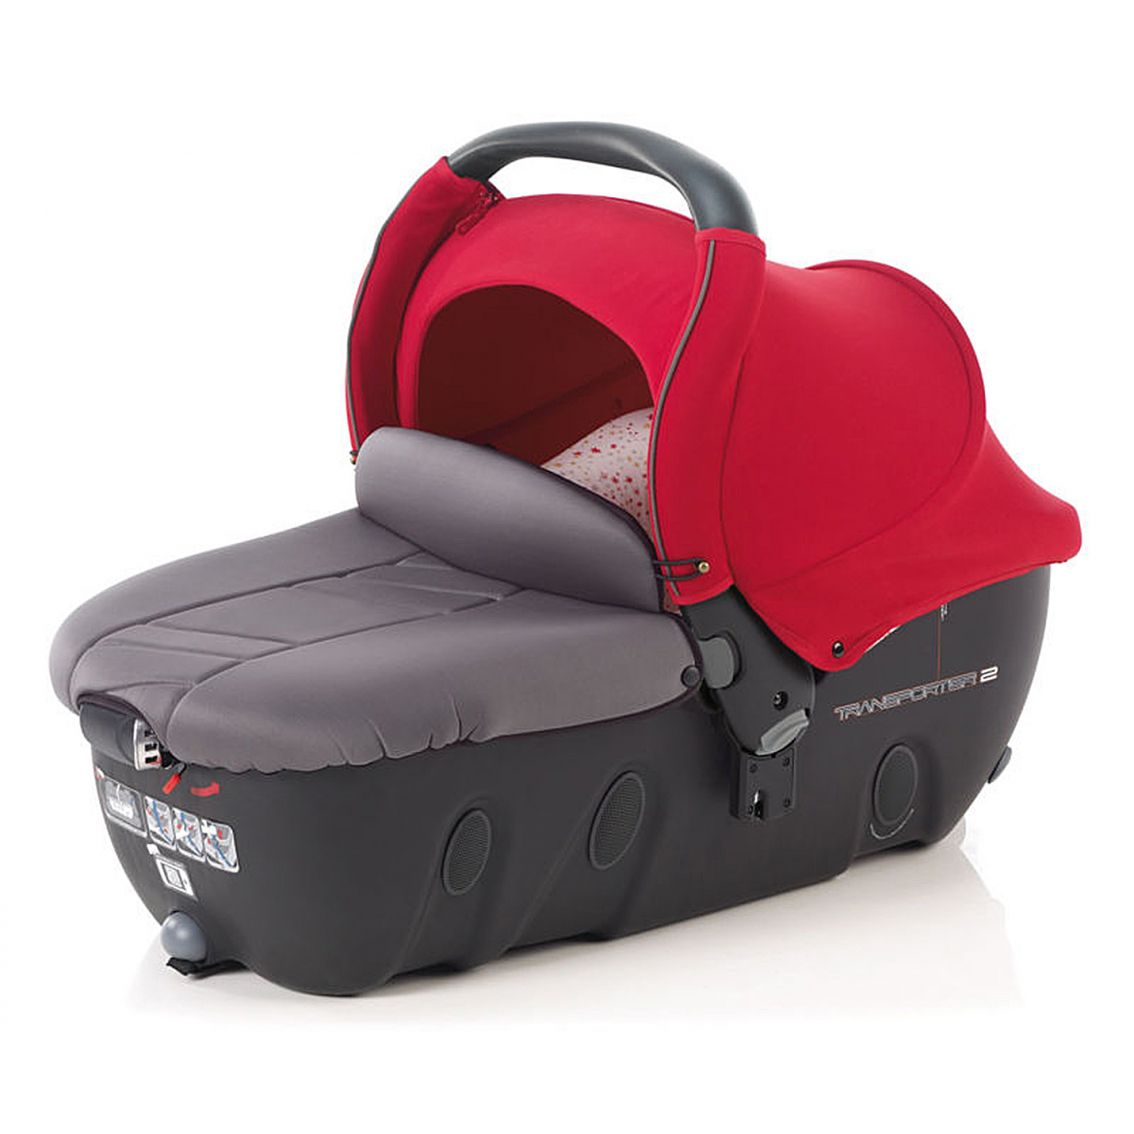 Infant Lie Flat Car Seat